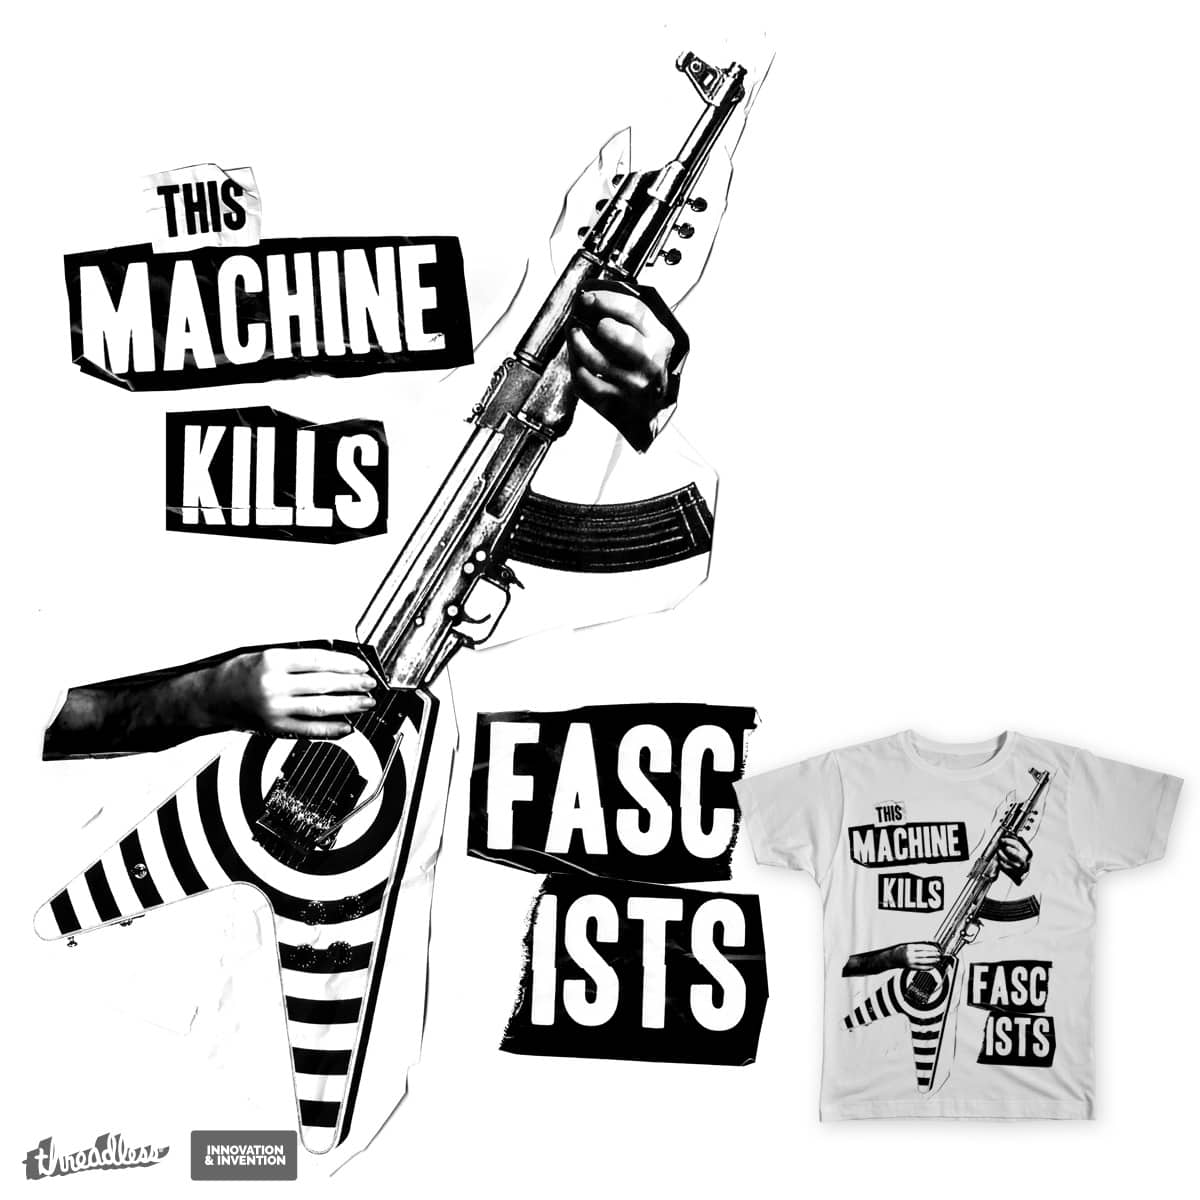 This Machine Kills Fascists by Pixelord on Threadless